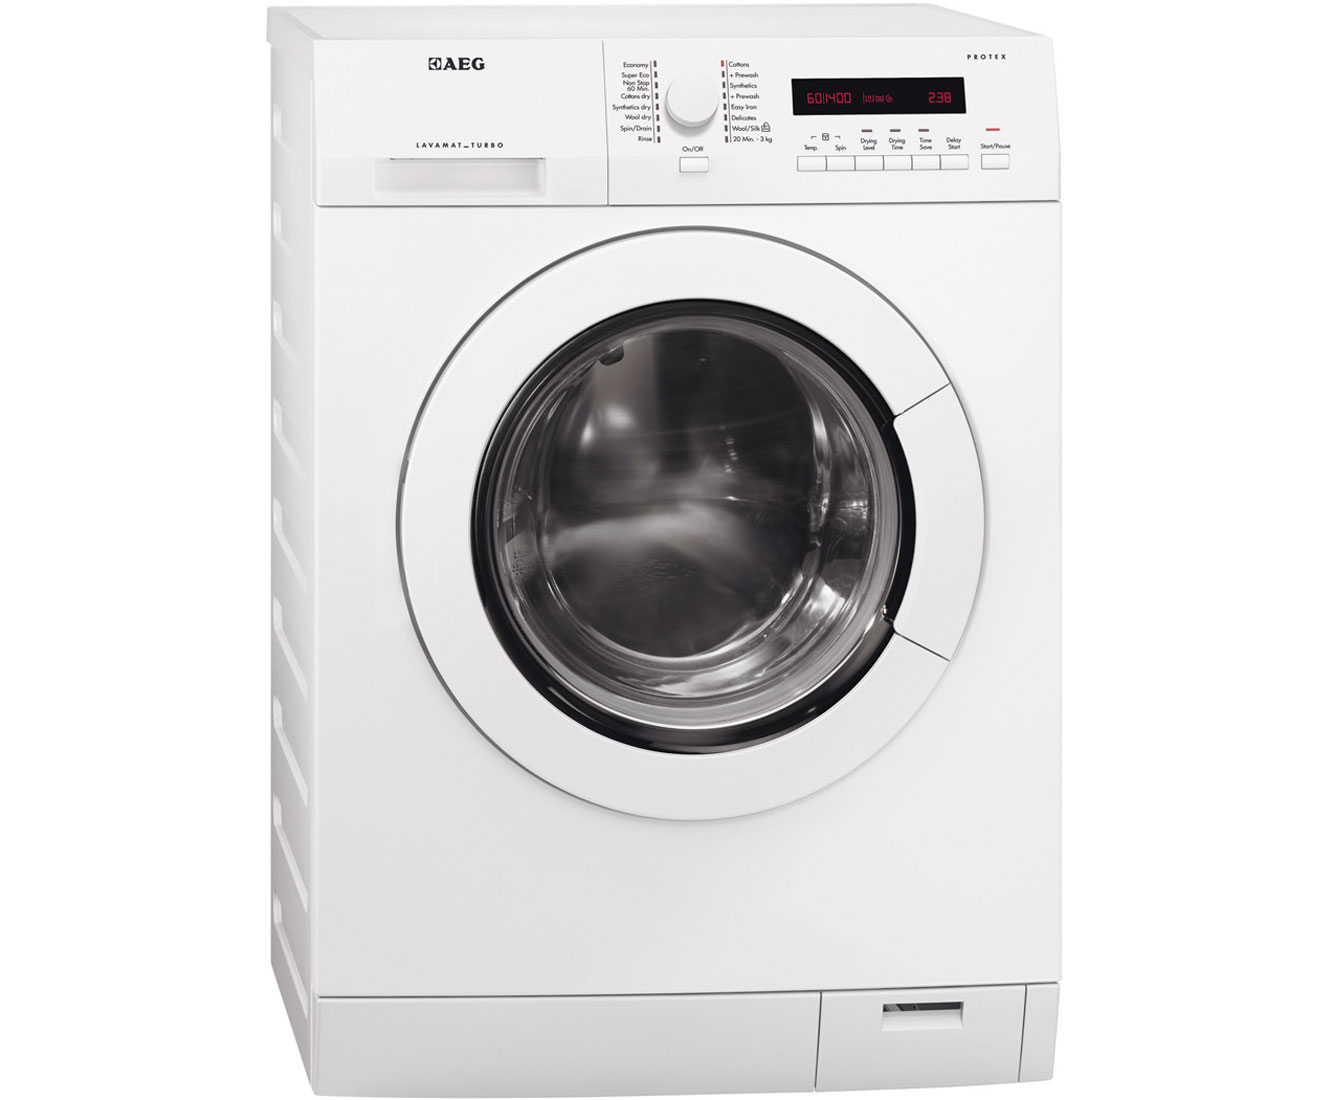 aeg l75480wd1400 spin 8kg all in one condenser washer dryer in white ebay. Black Bedroom Furniture Sets. Home Design Ideas